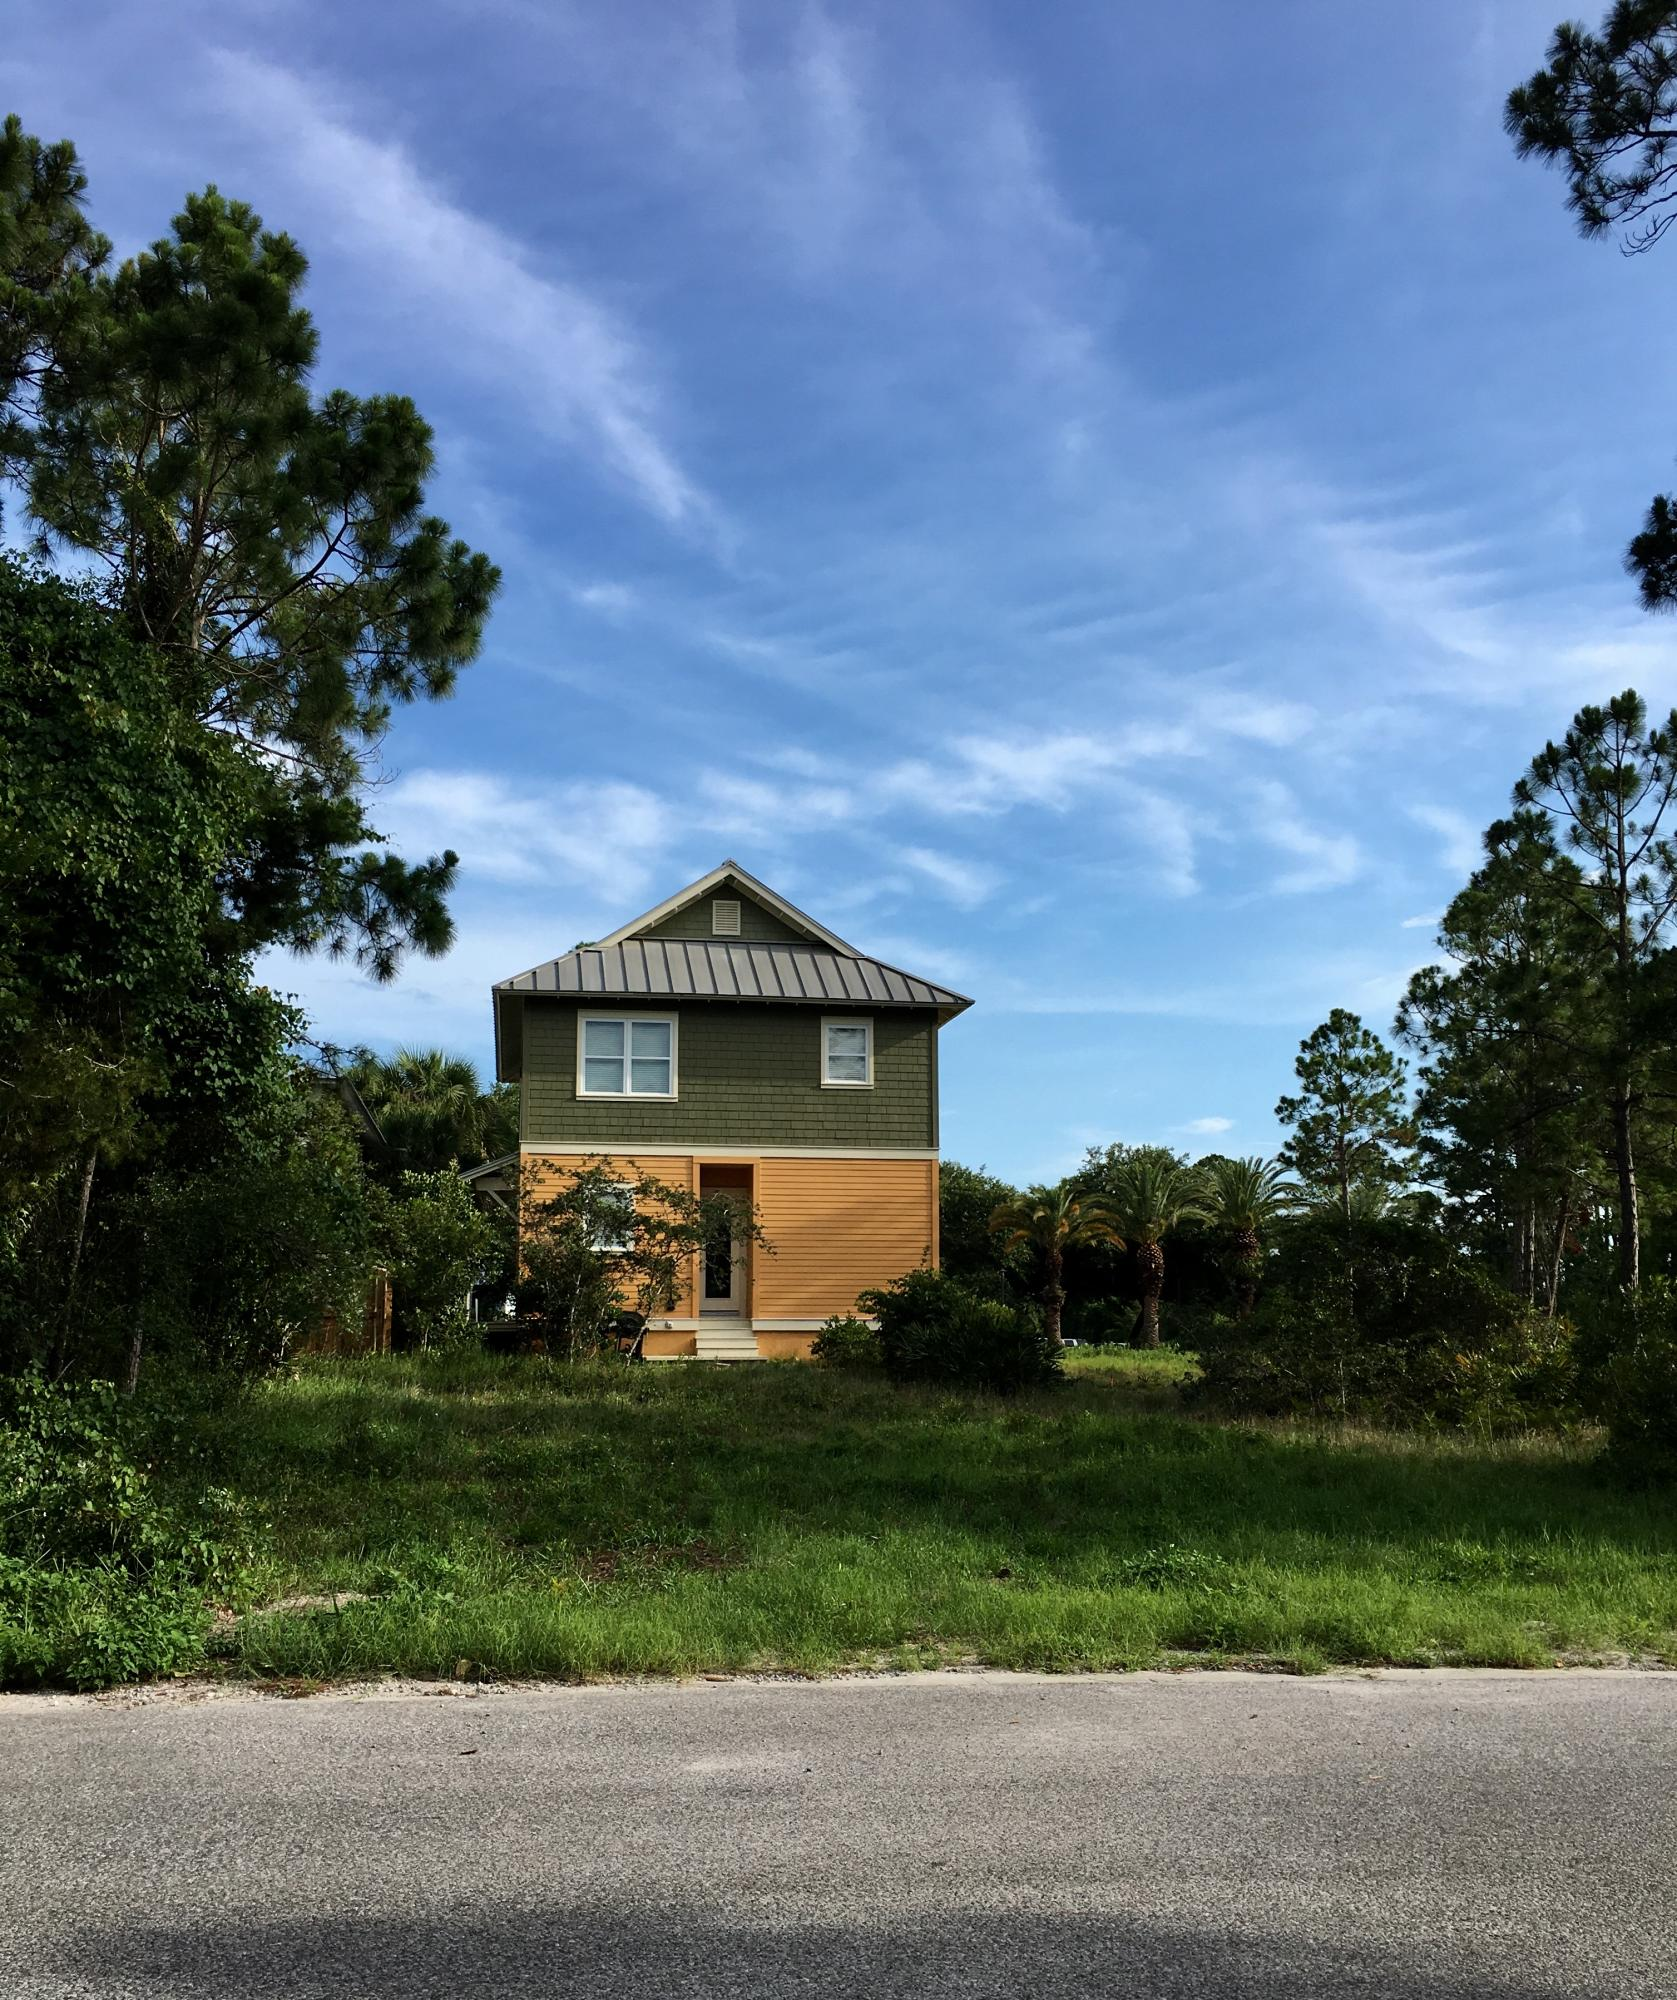 Lot 2 Redfish,Santa Rosa Beach,Florida 32459,Vacant land,Redfish,20131126143817002353000000